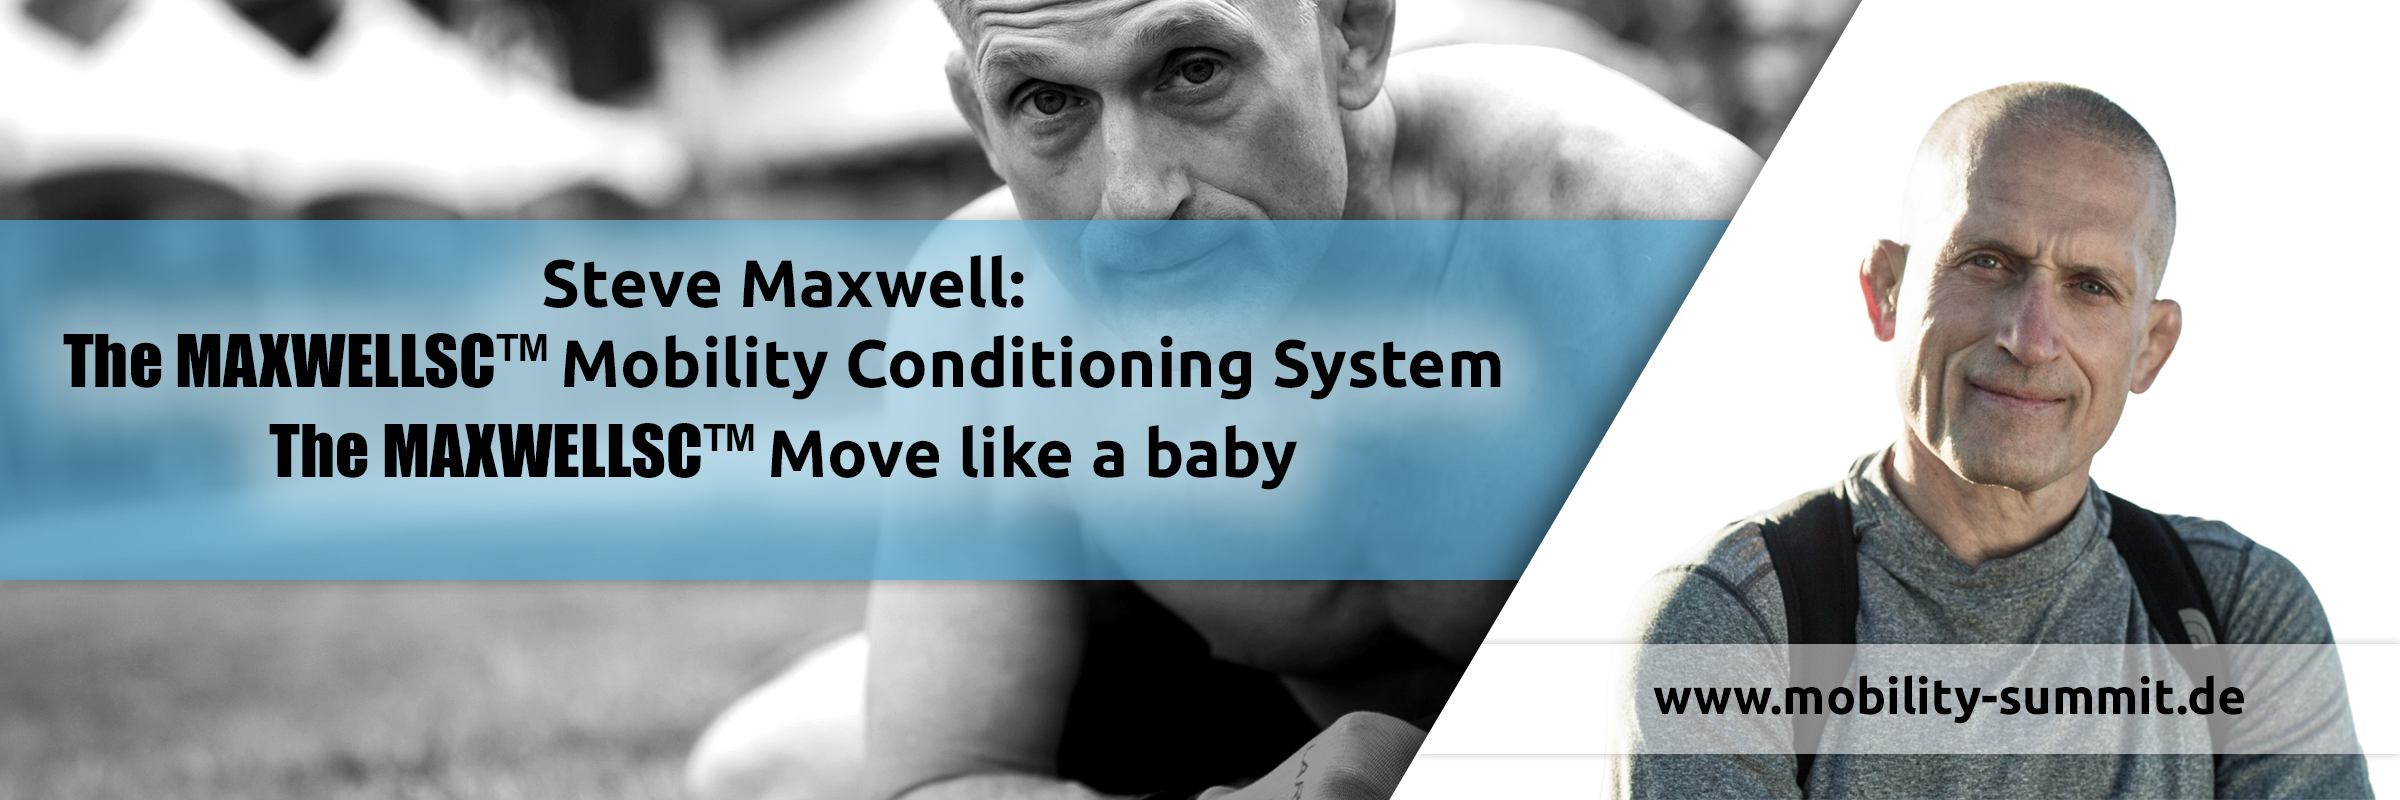 Steve Maxwell will be one of the speakers of the Mobility & Fascia Summit 2016